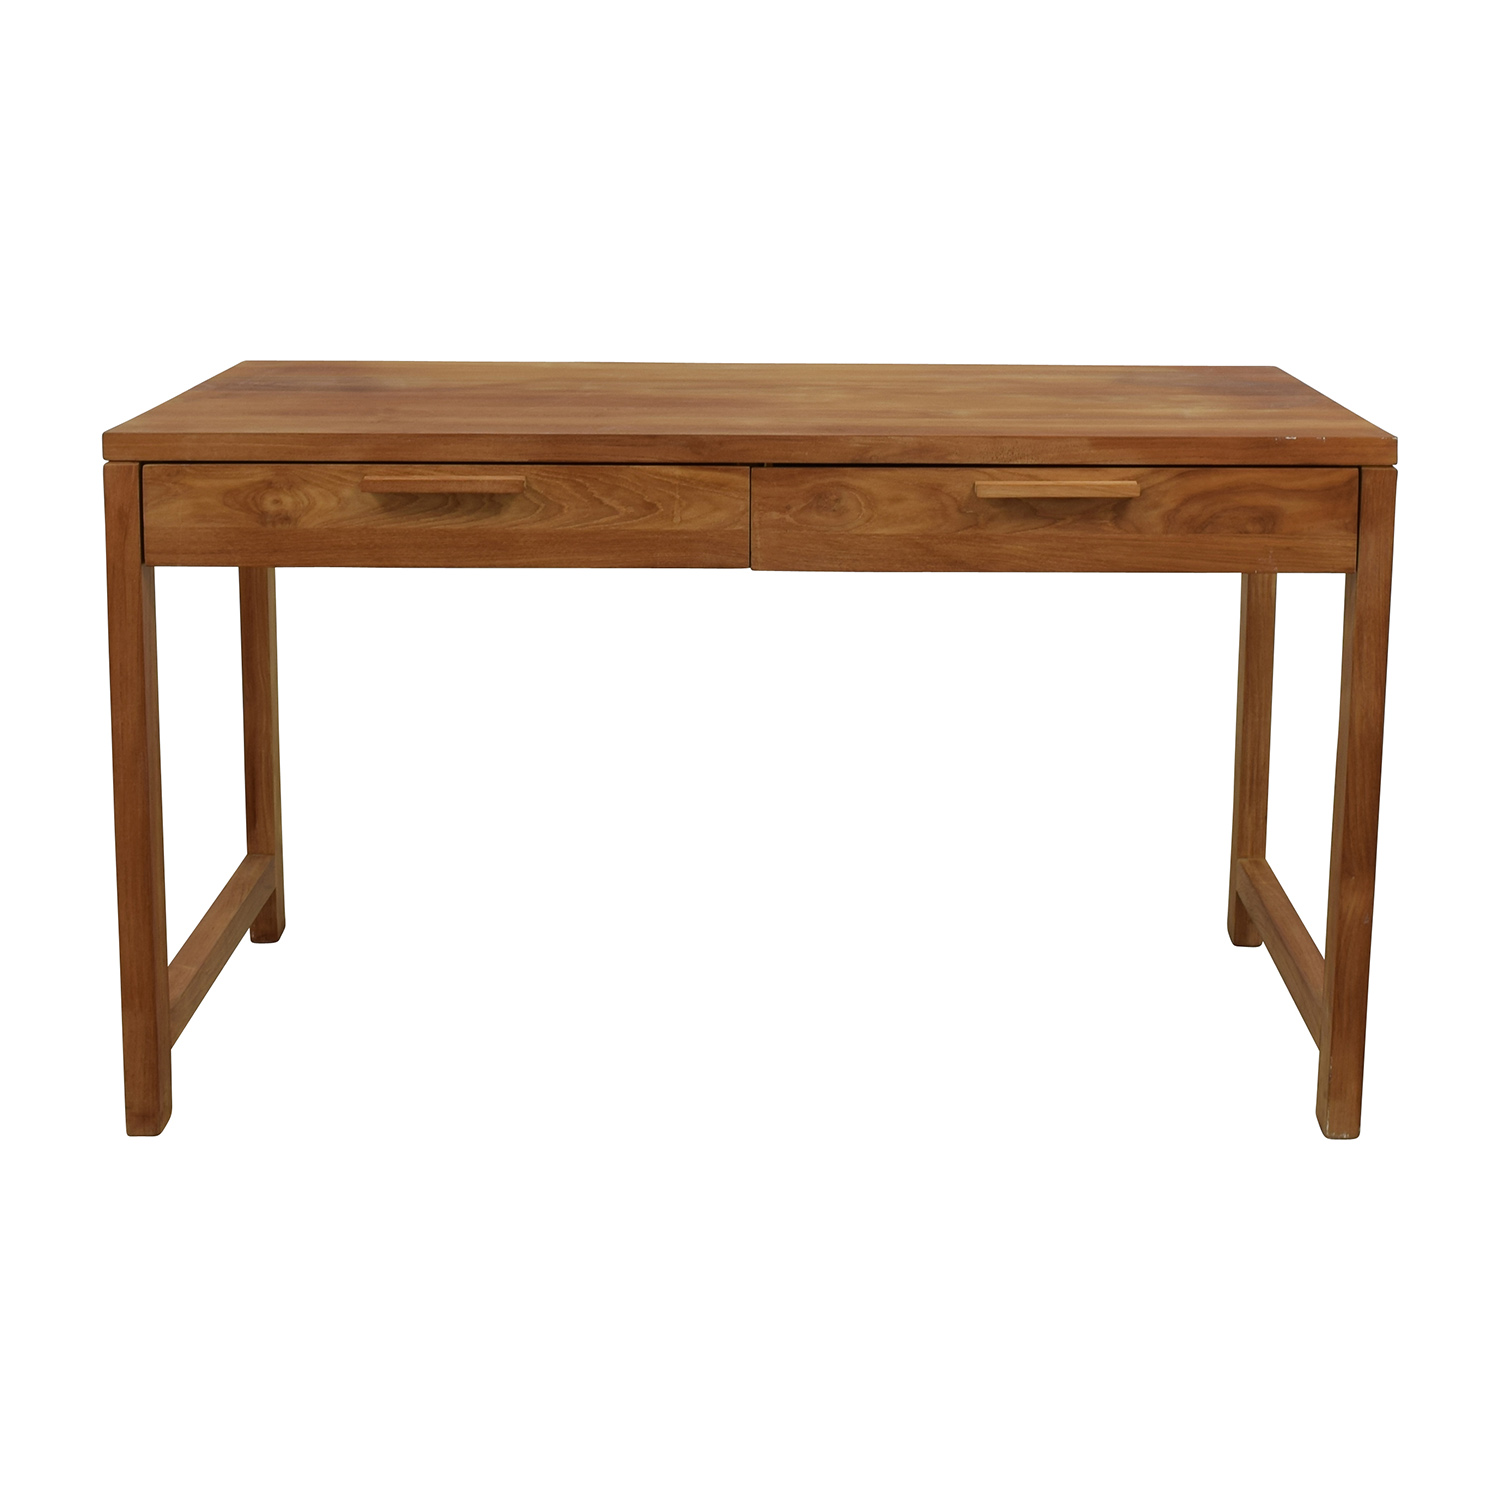 Room and Board Room & Board Two-Drawer Teak Desk coupon